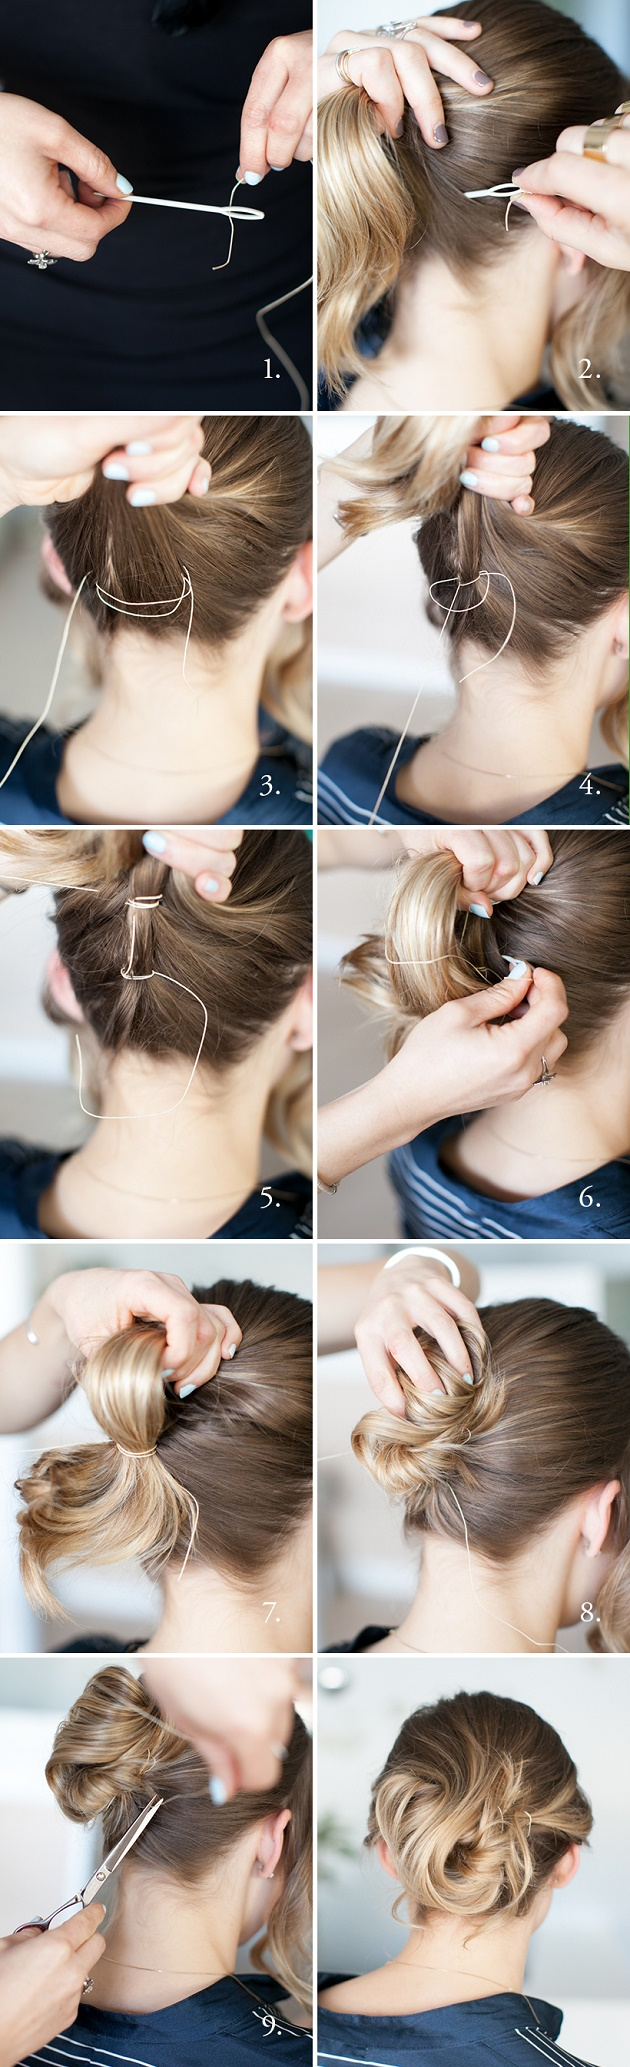 Uncommon Way To Make a Bun   The Sew It Up Updo   AllDayChic   Diy ...